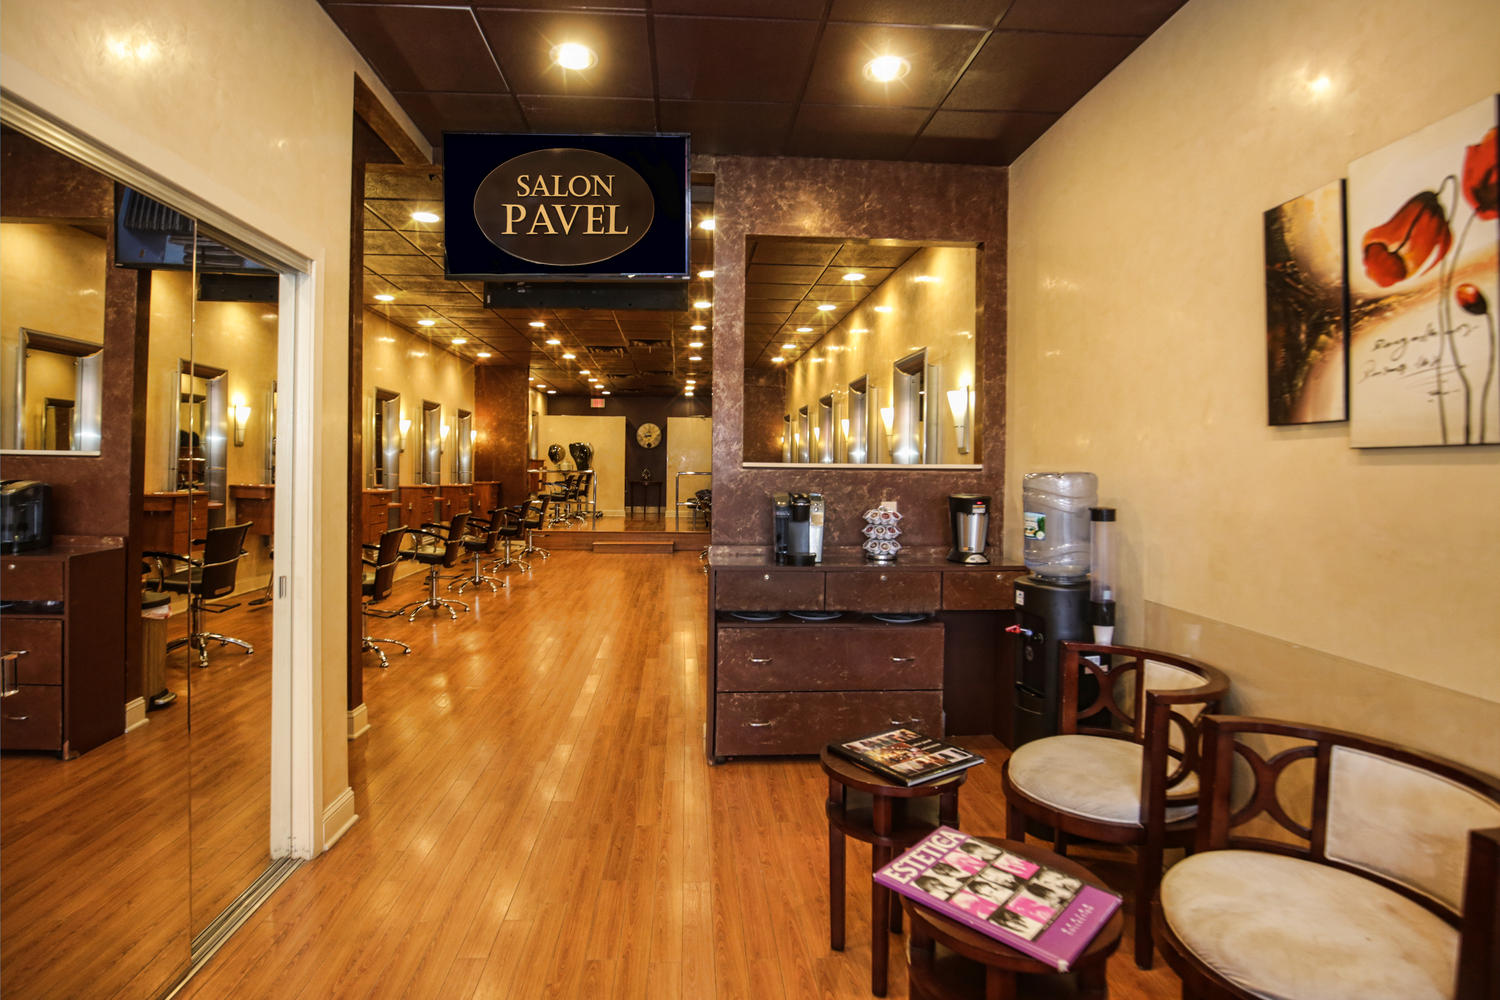 Celebrity Salons Inc in Tenafly, NJ with Reviews - YP.com